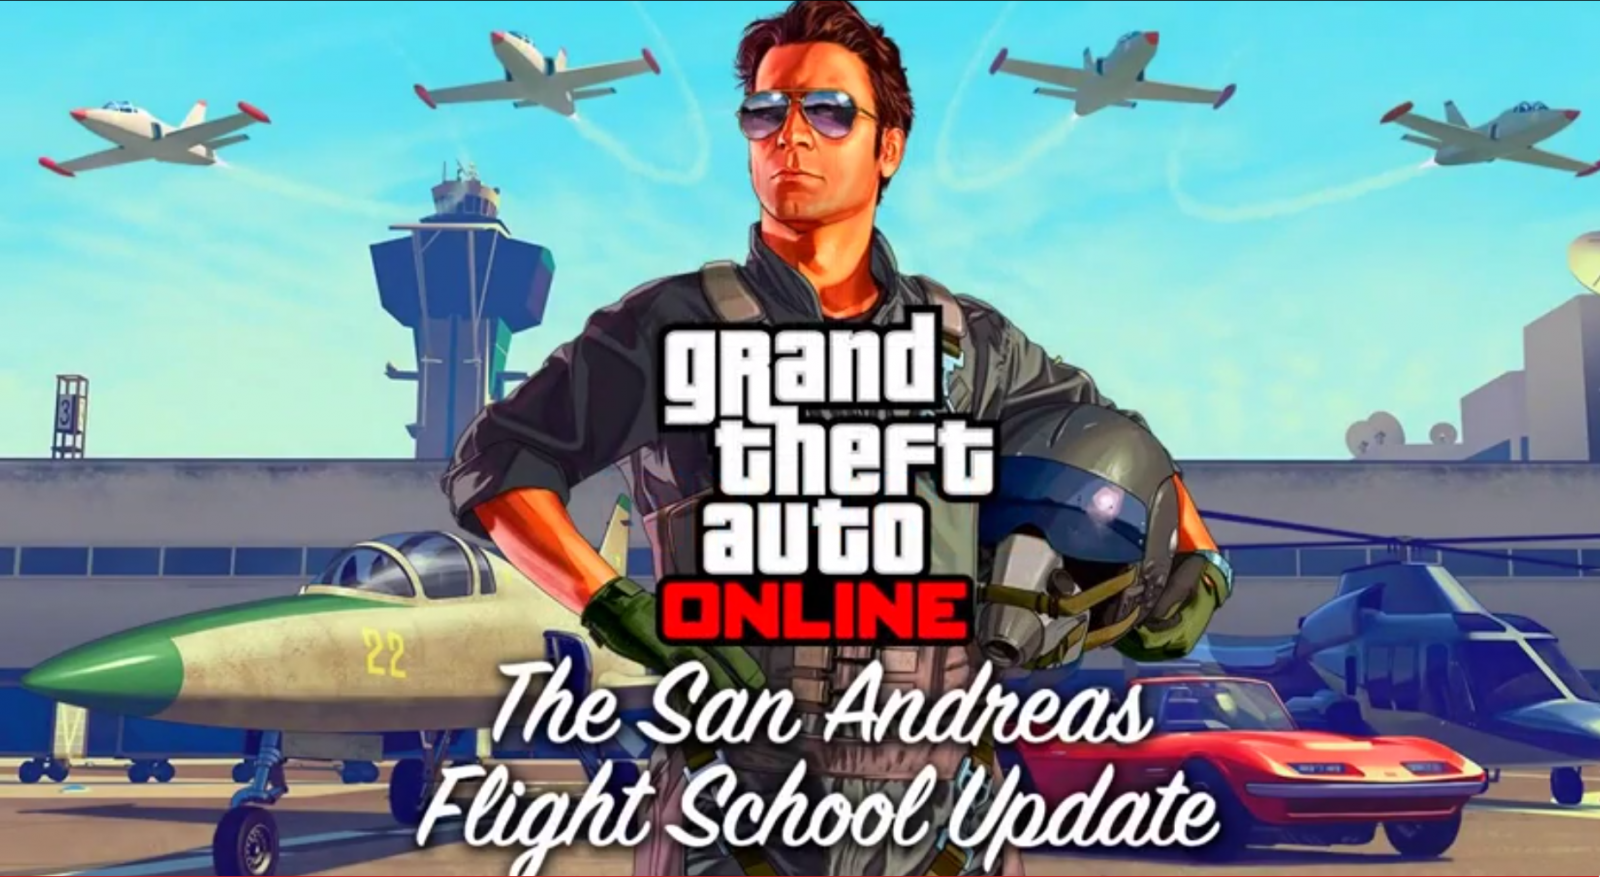 New dlc for gta 5 online release date